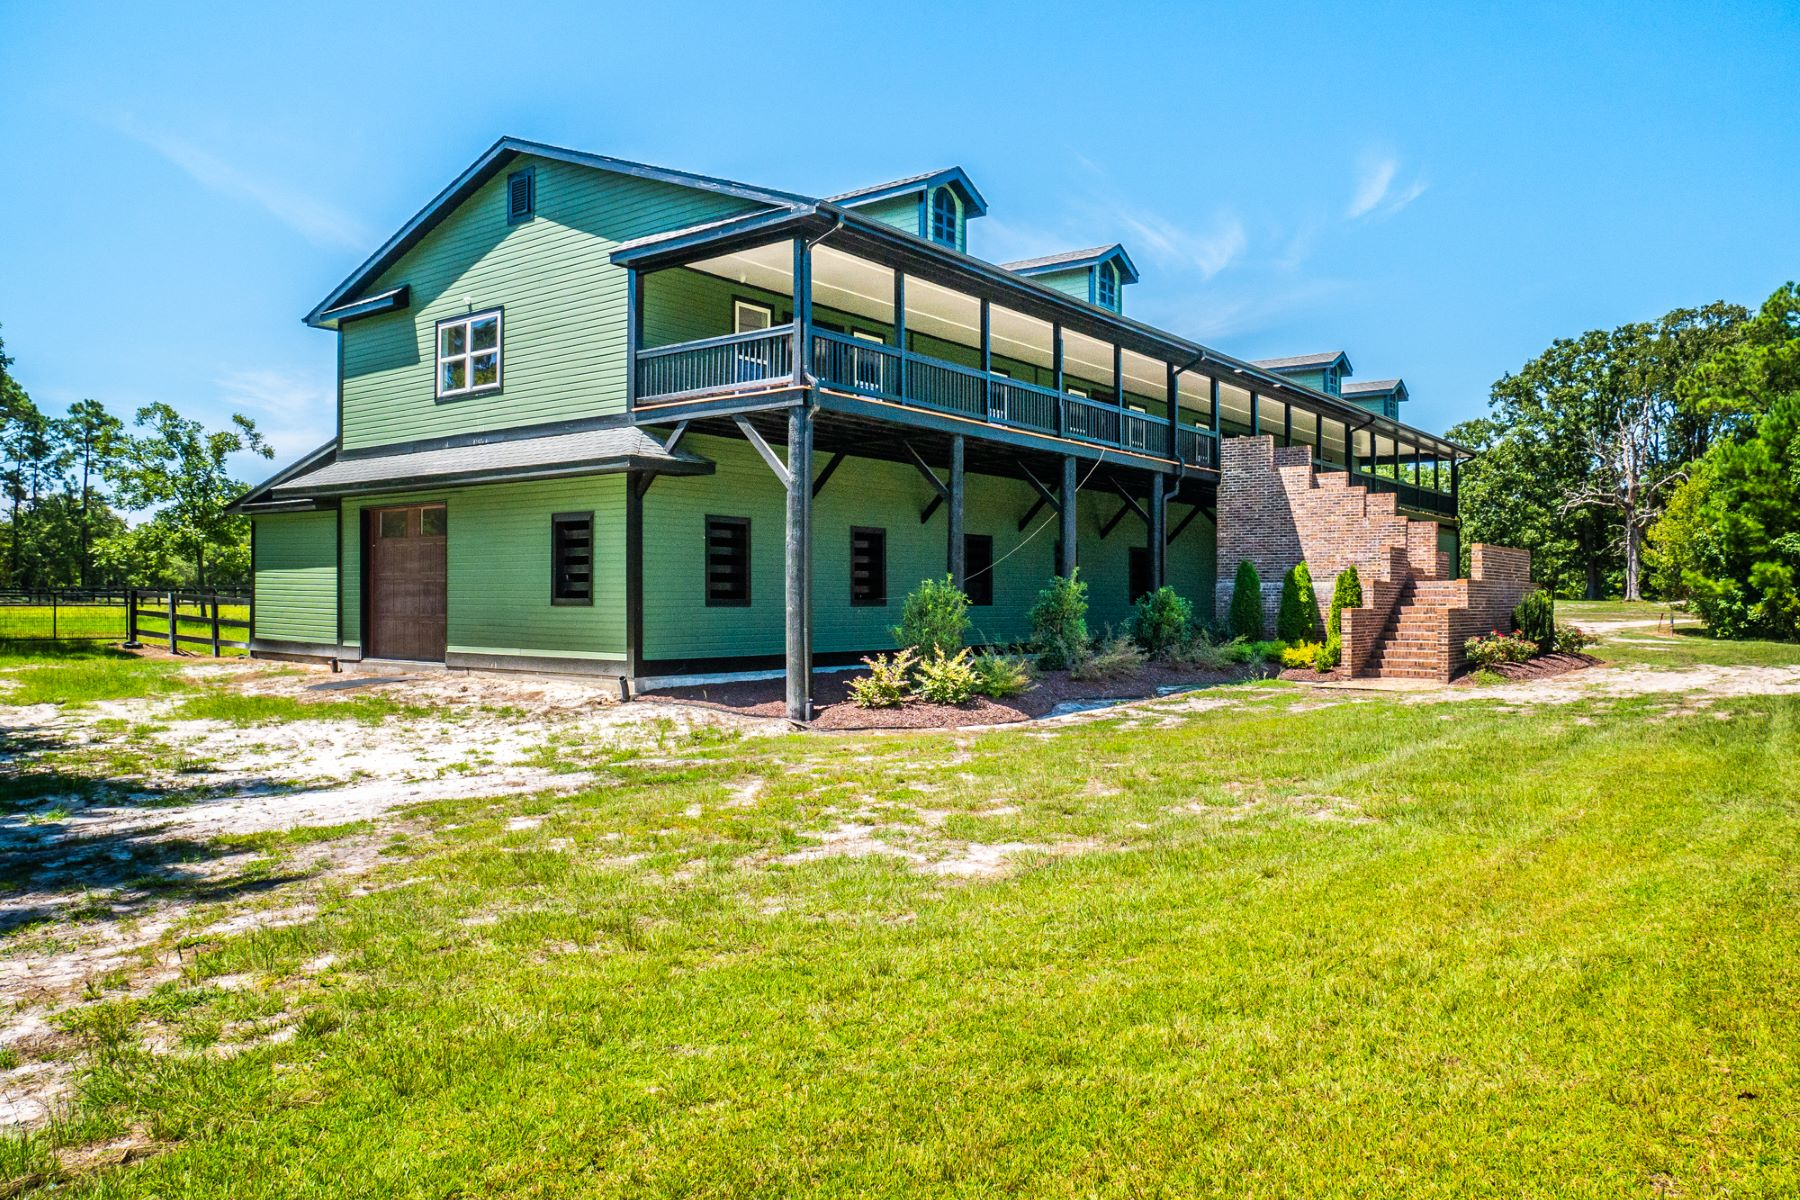 Single Family Homes for Sale at Elegant Equestrian Property Near the Ocean 240 Green Bay Road NW Ocean Isle Beach, North Carolina 28469 United States